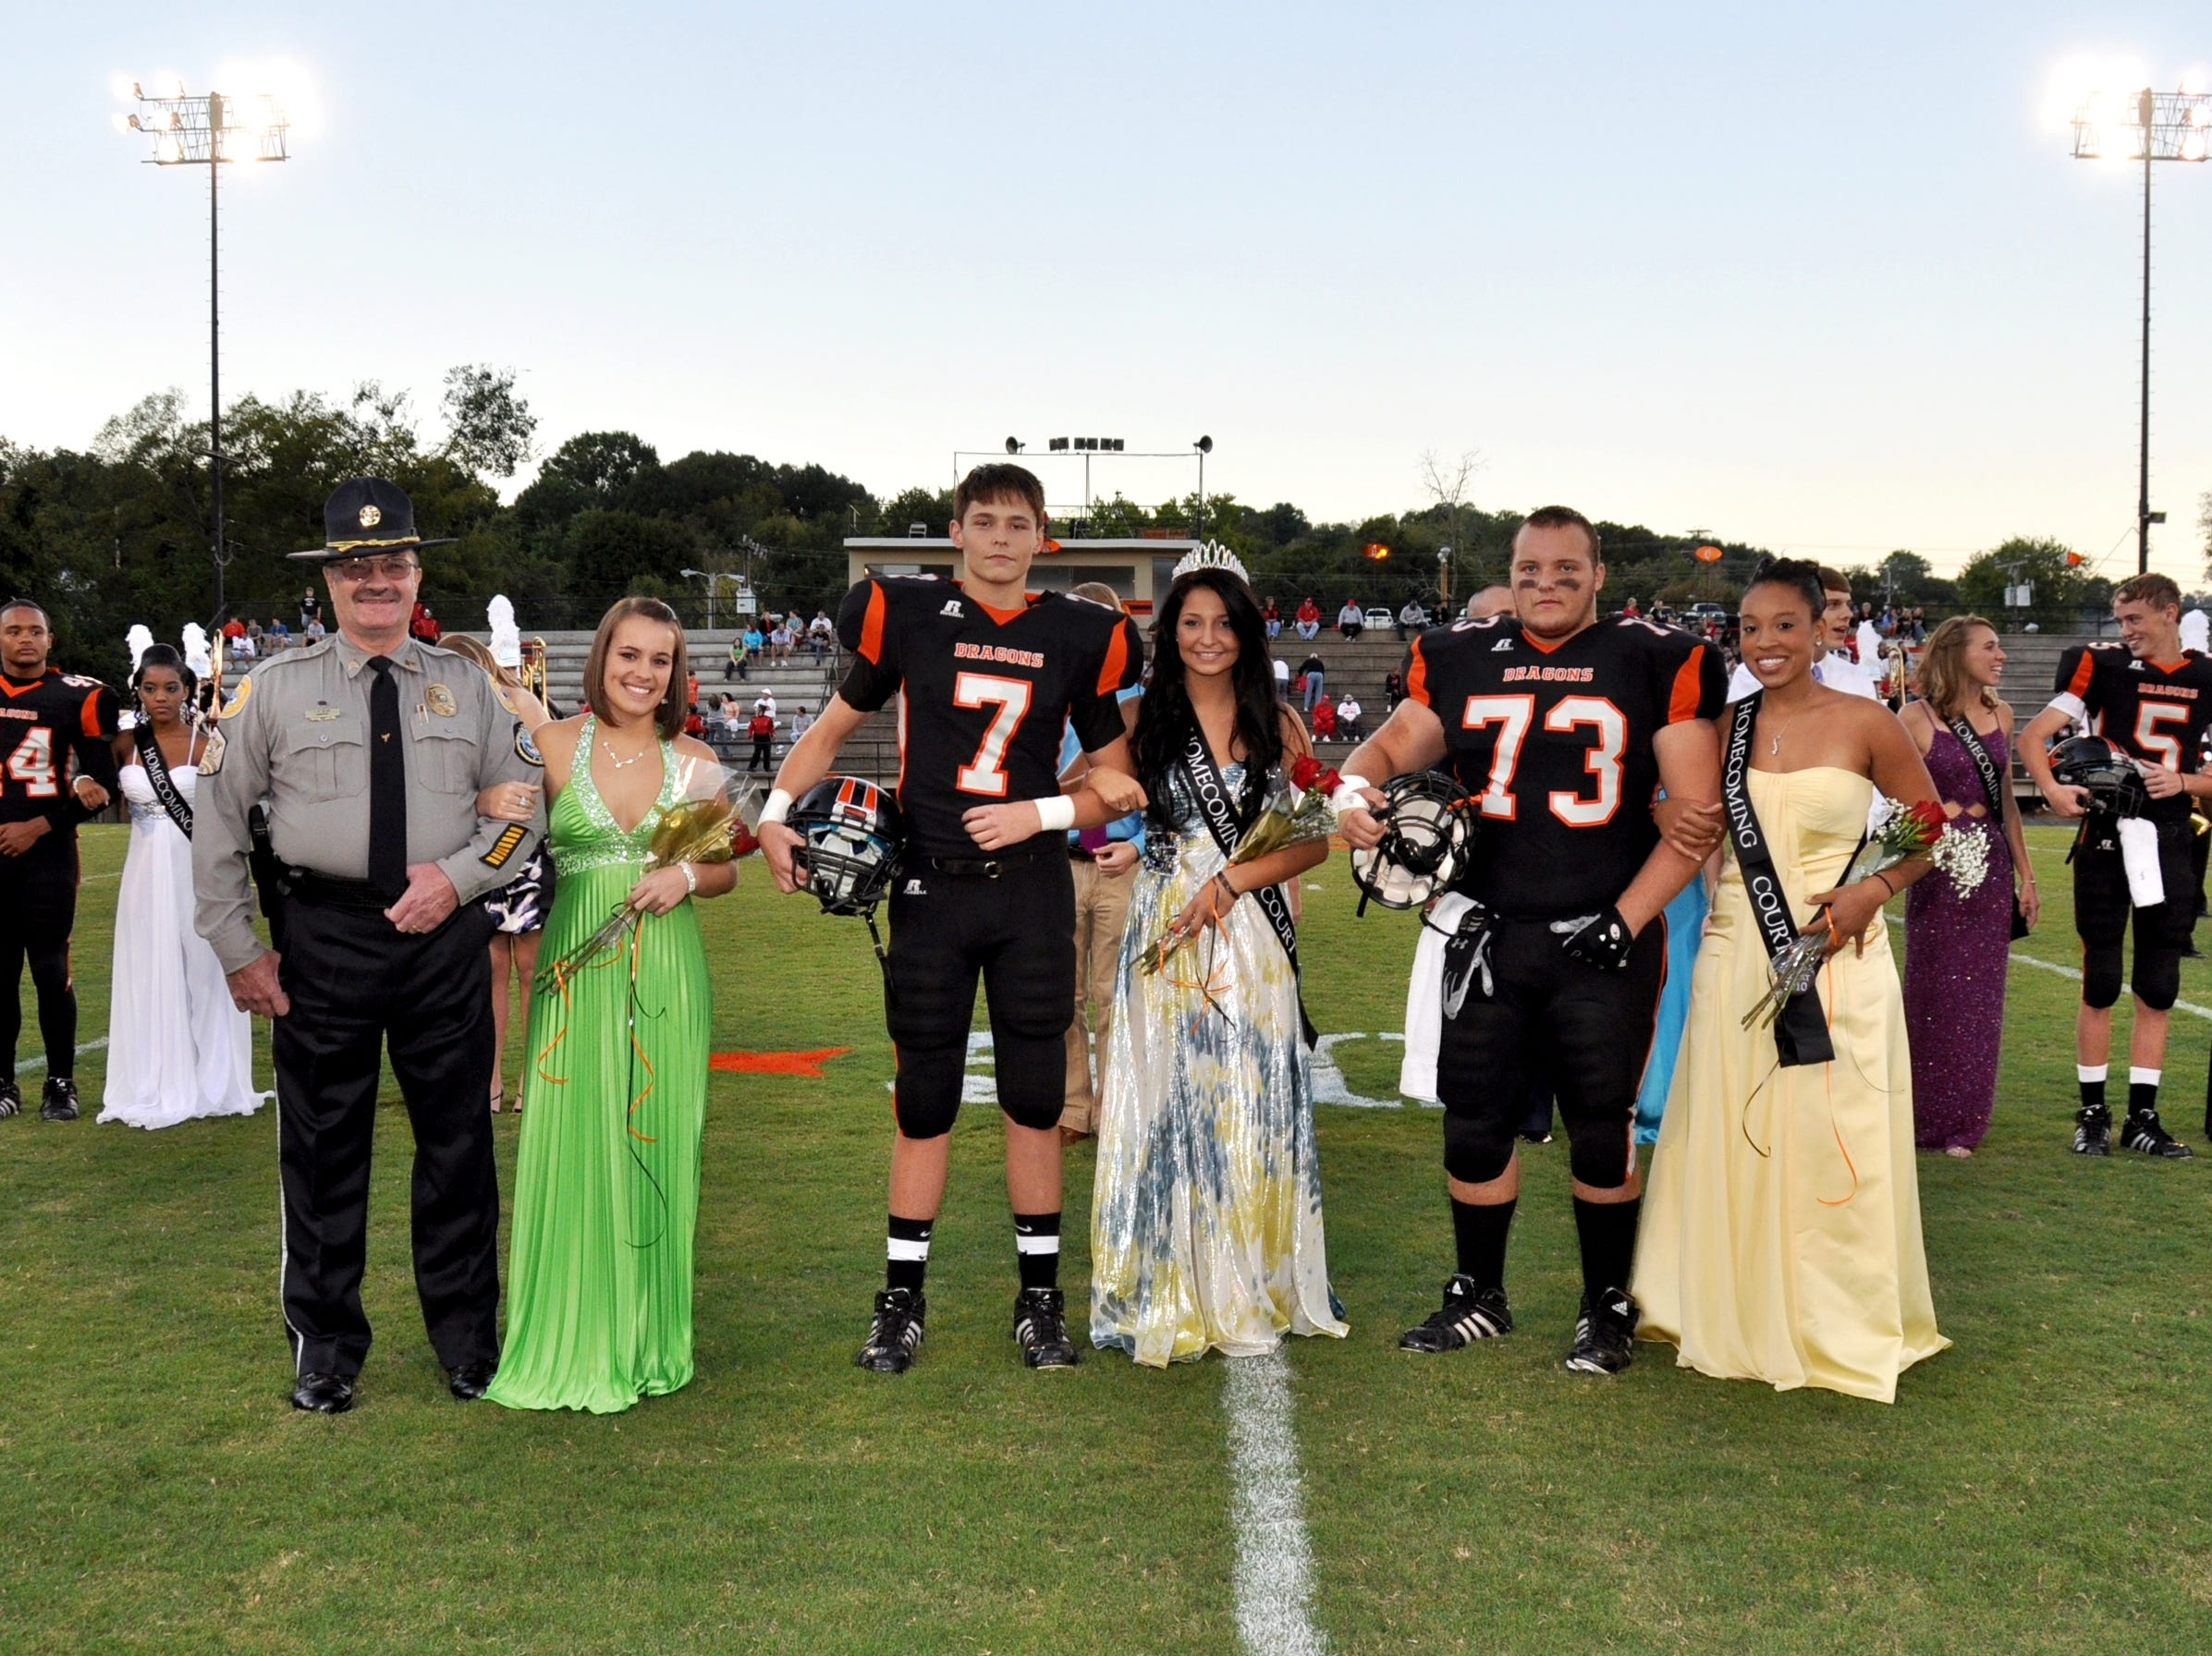 The 2010 Clinton High School Homecoming court and their escorts included, from left, Officer C.H. Bean escorting second runner-up Sarah Bean, Stephen Antonelli escorting homecoming queen Tricia Antonelli, and James Stearns escorting first runner-up Shawna Cotham.